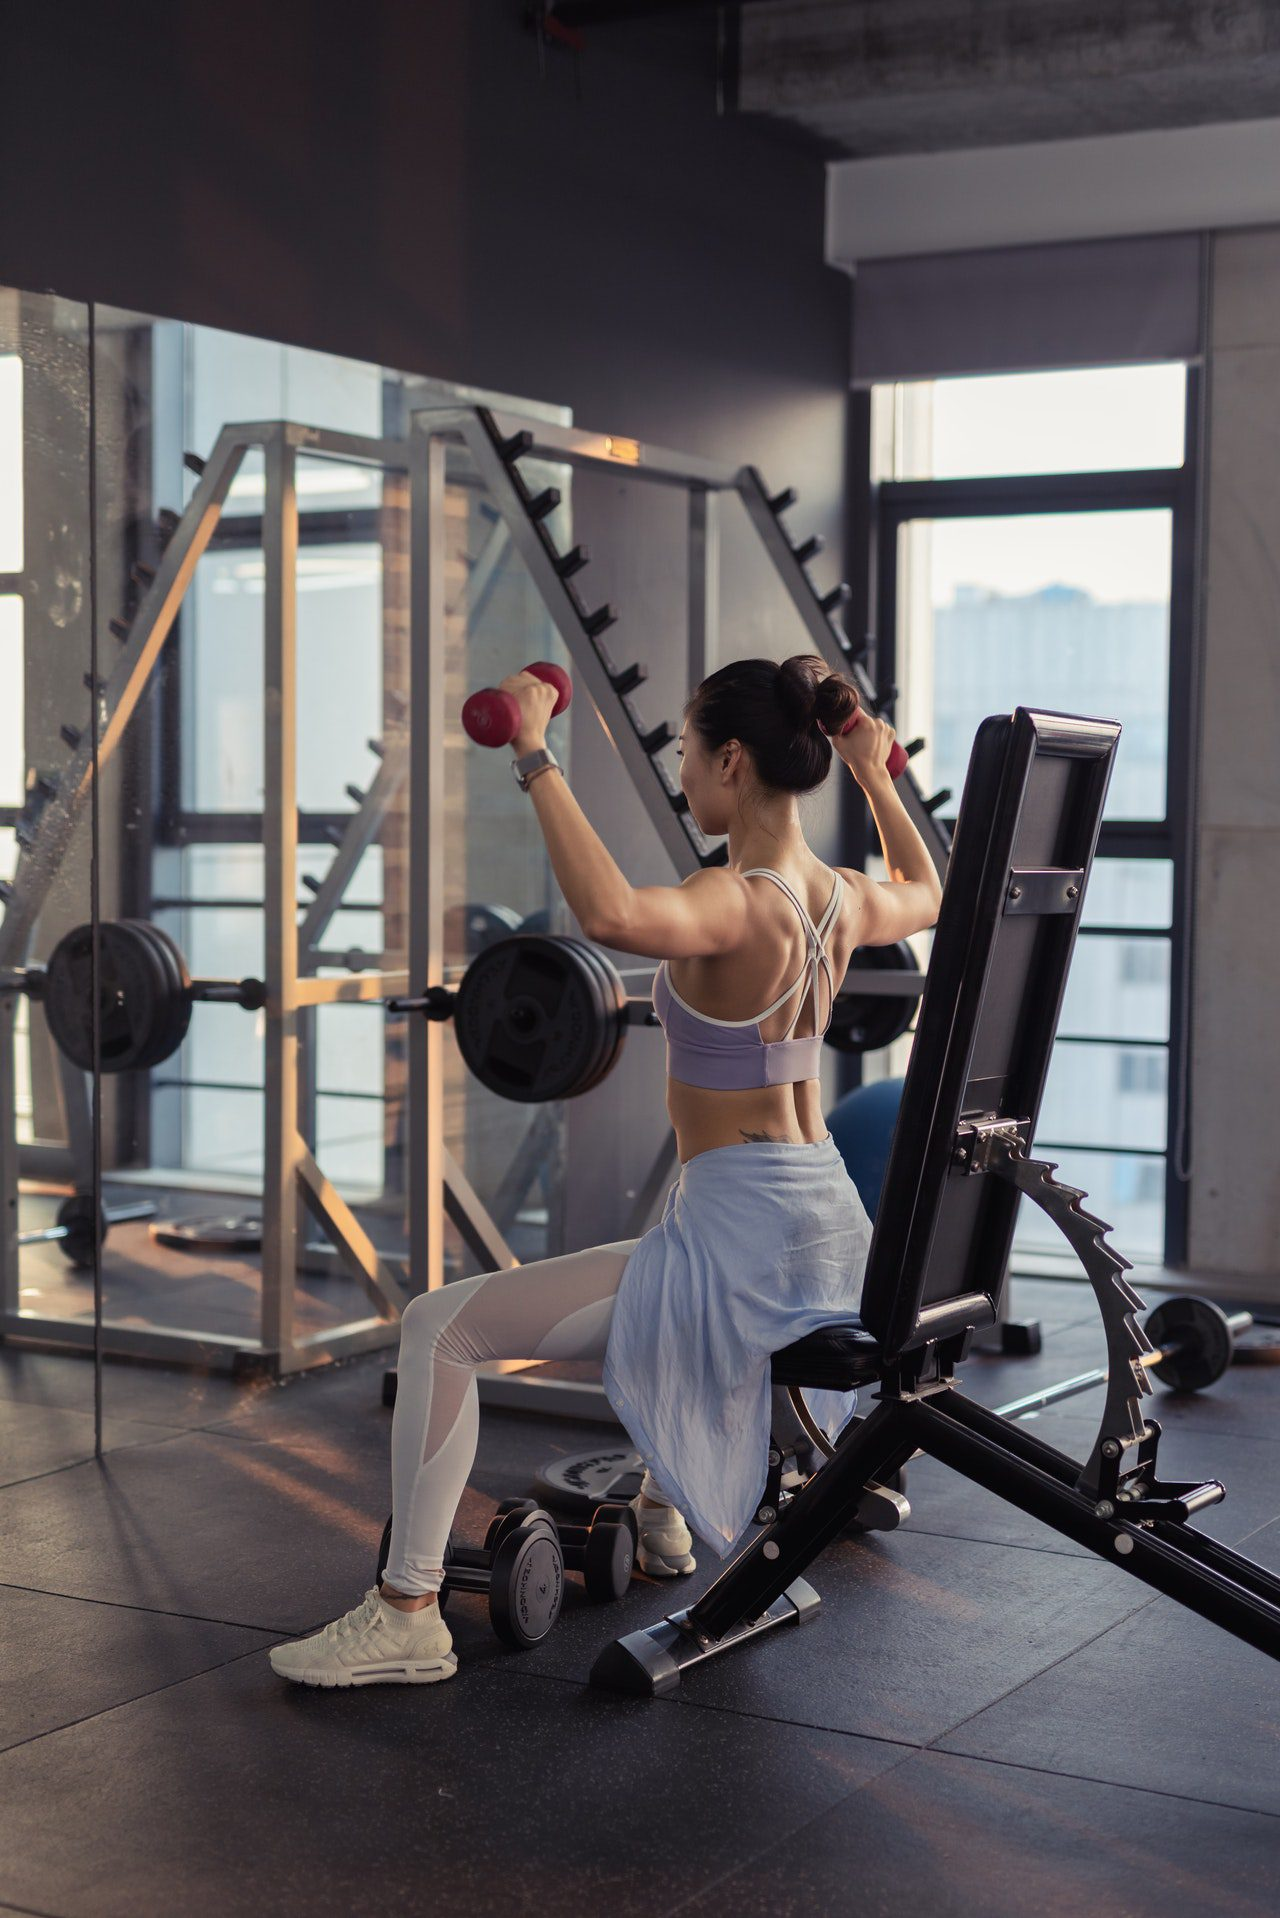 Gym Outfits: 5 Cool Work Out Gym Wears